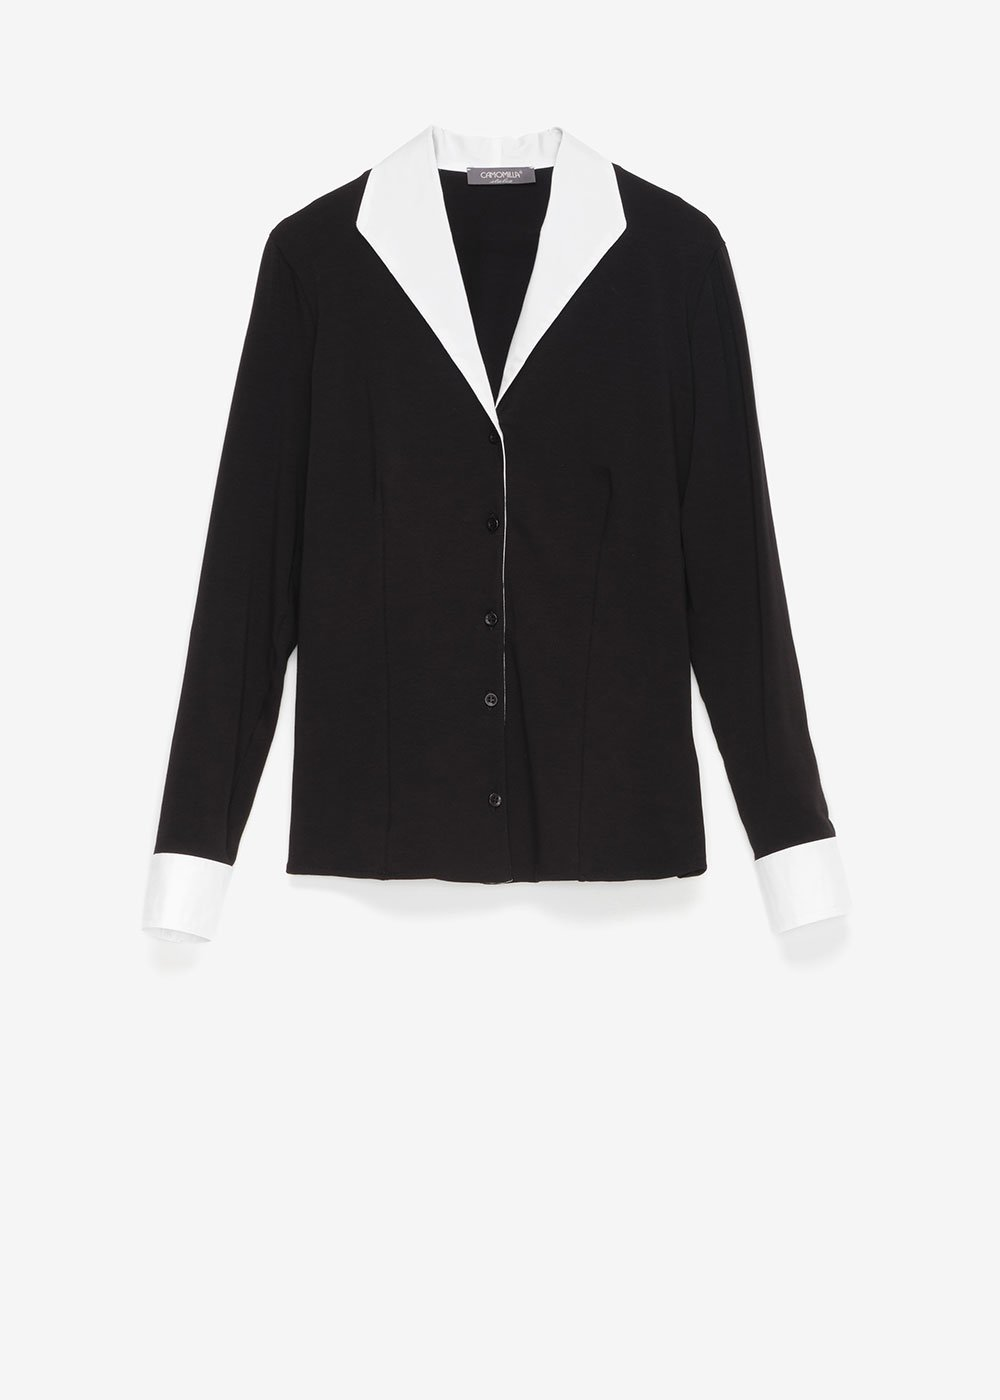 Connie shirt with lapel and cuffs - Black / White - Woman